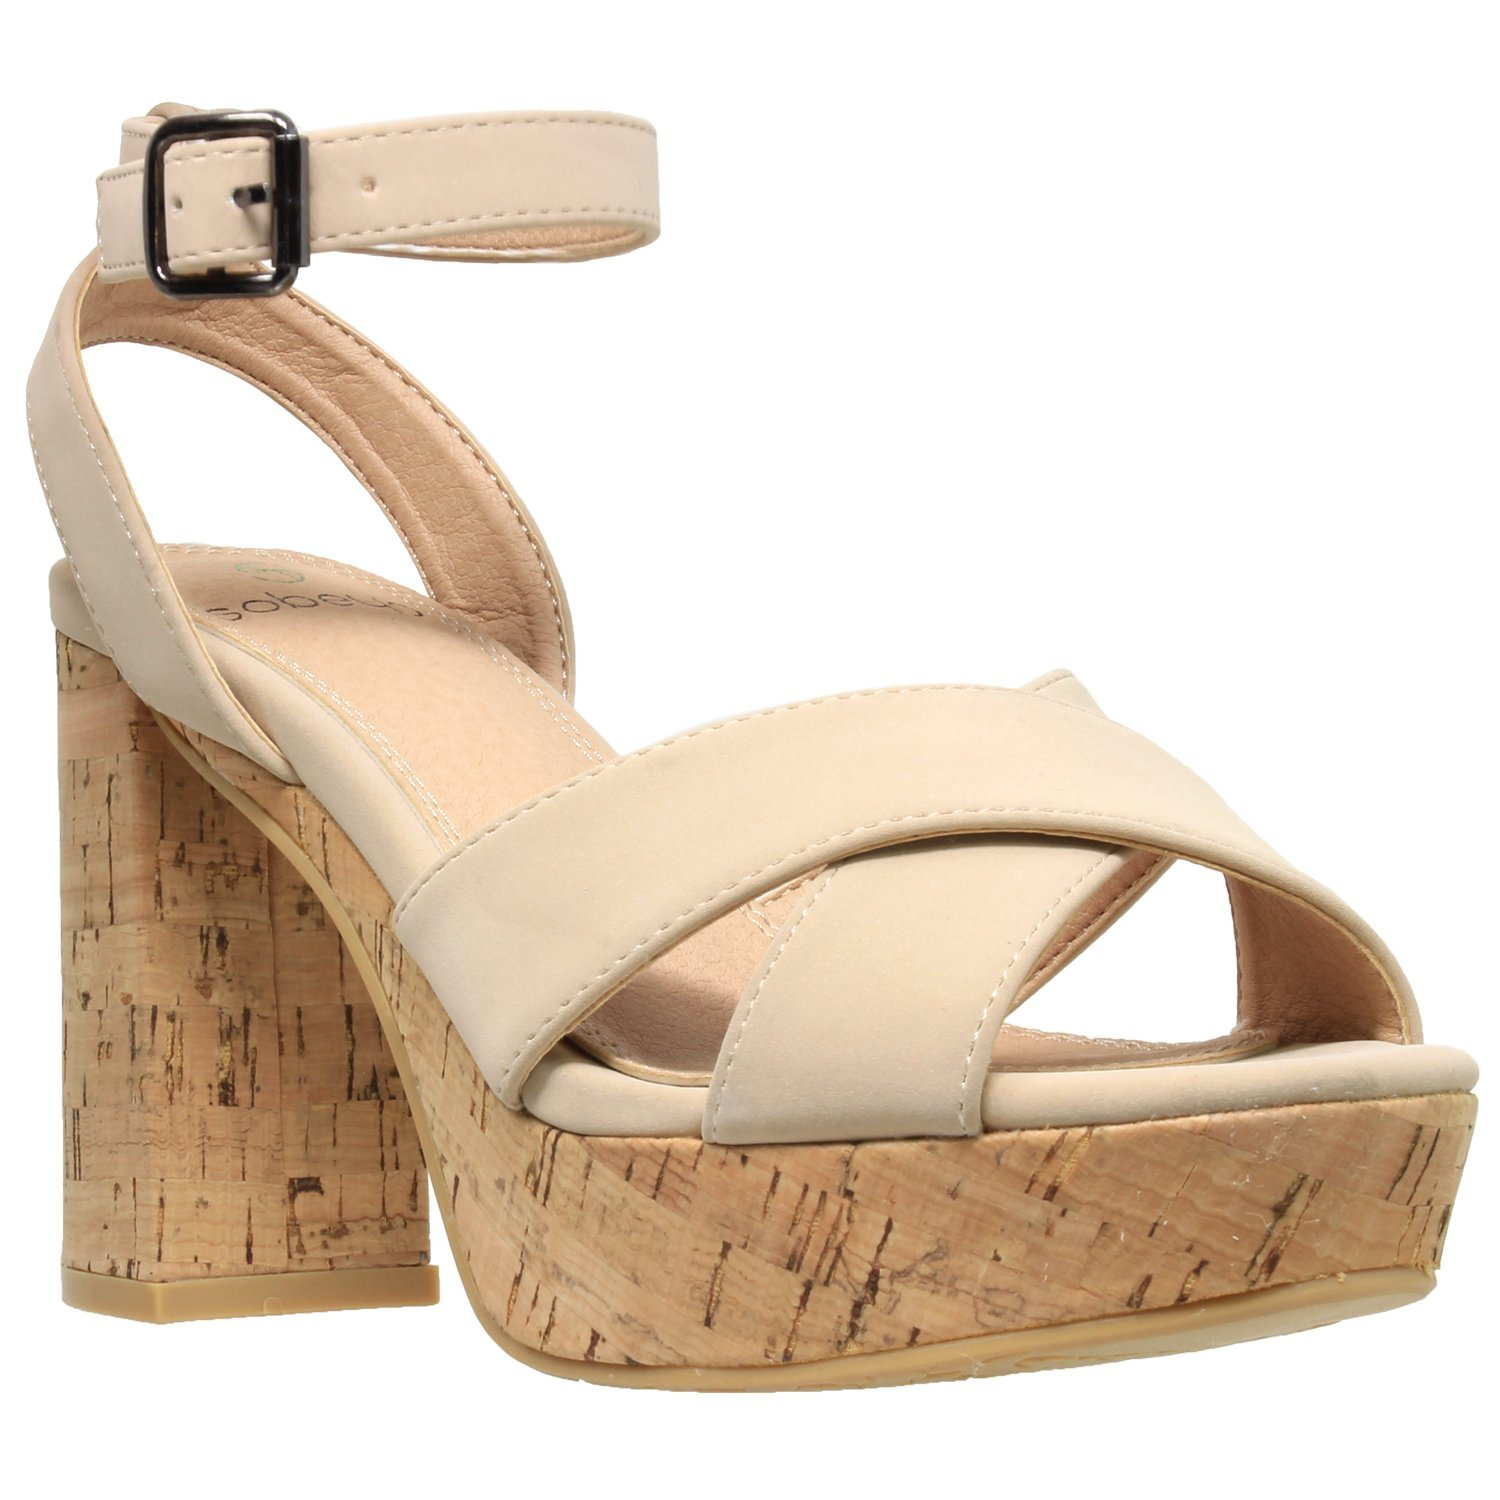 c418afdf6dc Get Quotations · SOBEYO Womens Platform Sandals Ankle Strap Wrapped Cork Chunky  Block Heel Shoes